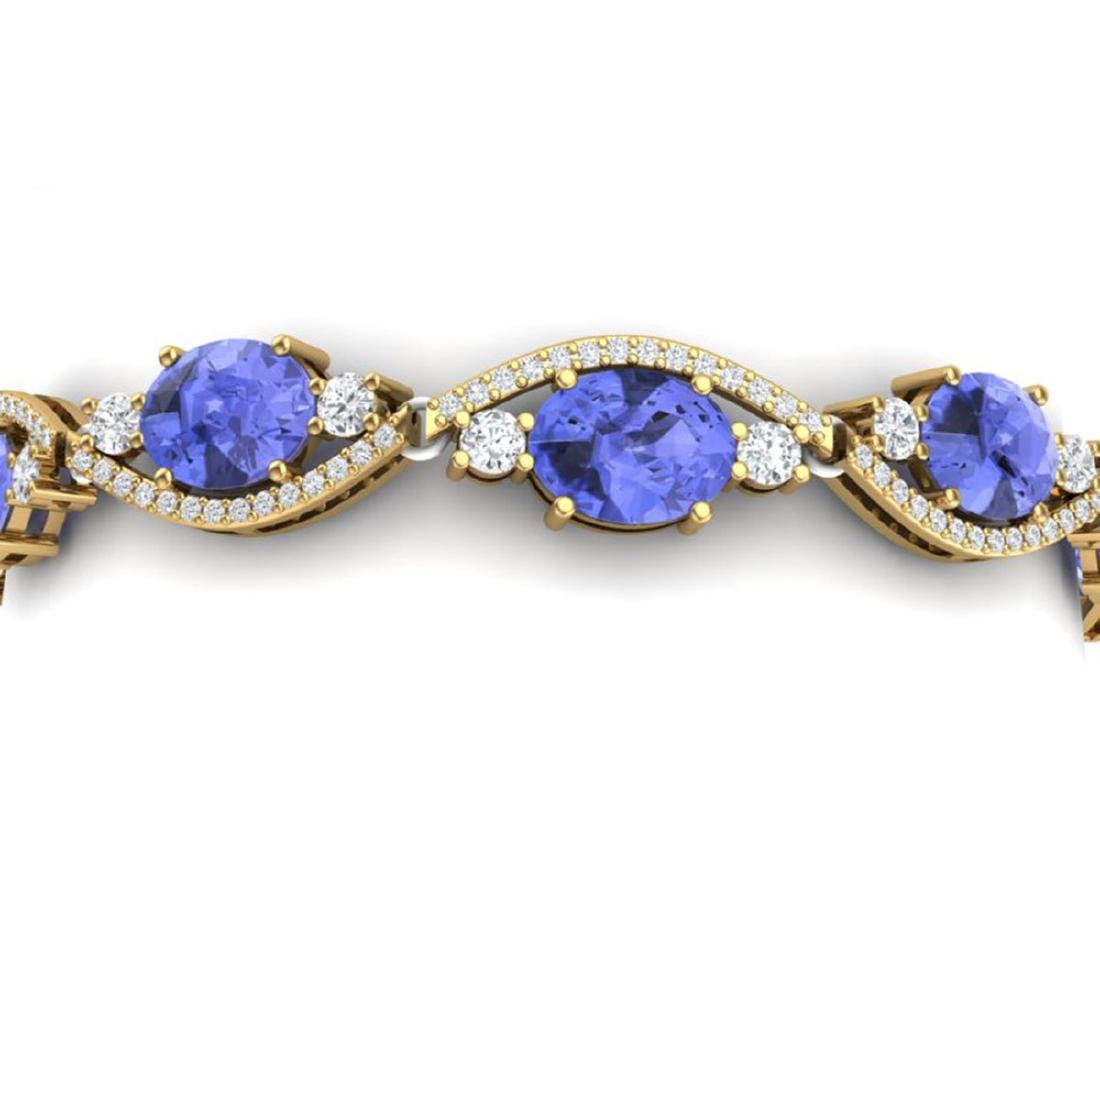 20.5 CTW Royalty Tanzanite & VS Diamond Bracelet 18K